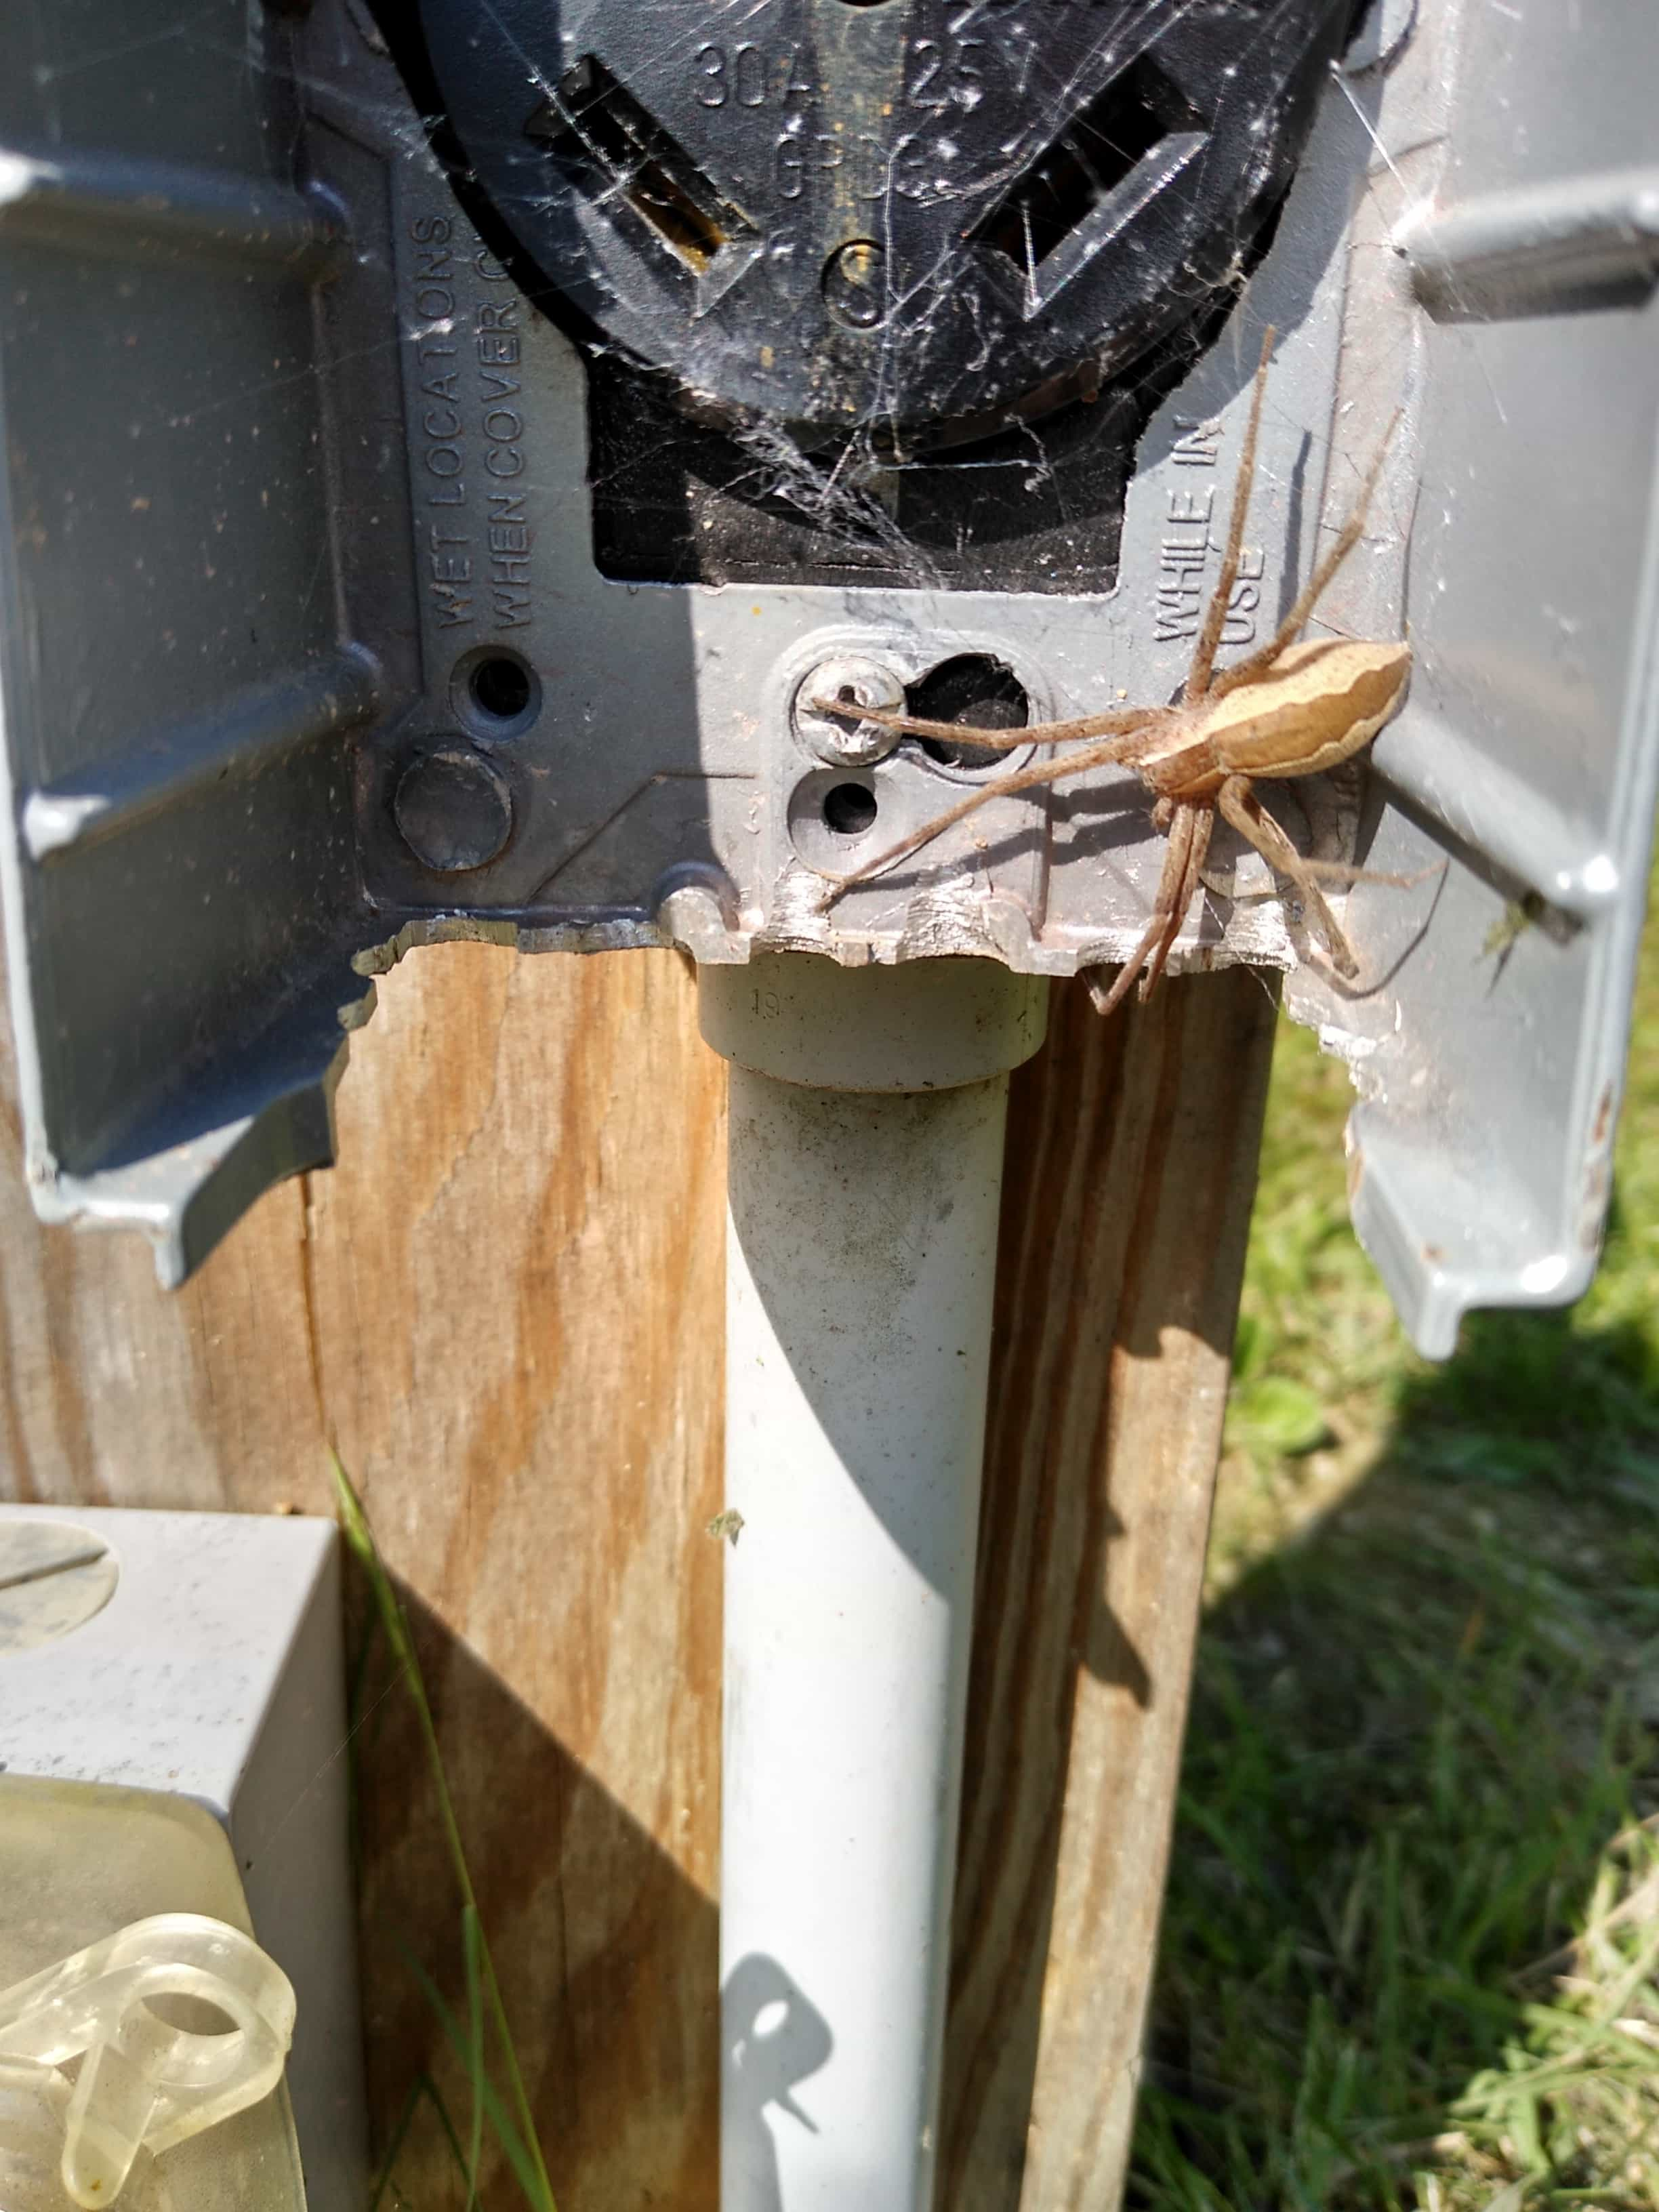 Picture of Pisaurina mira (Nursery Web Spider) - Female - Dorsal